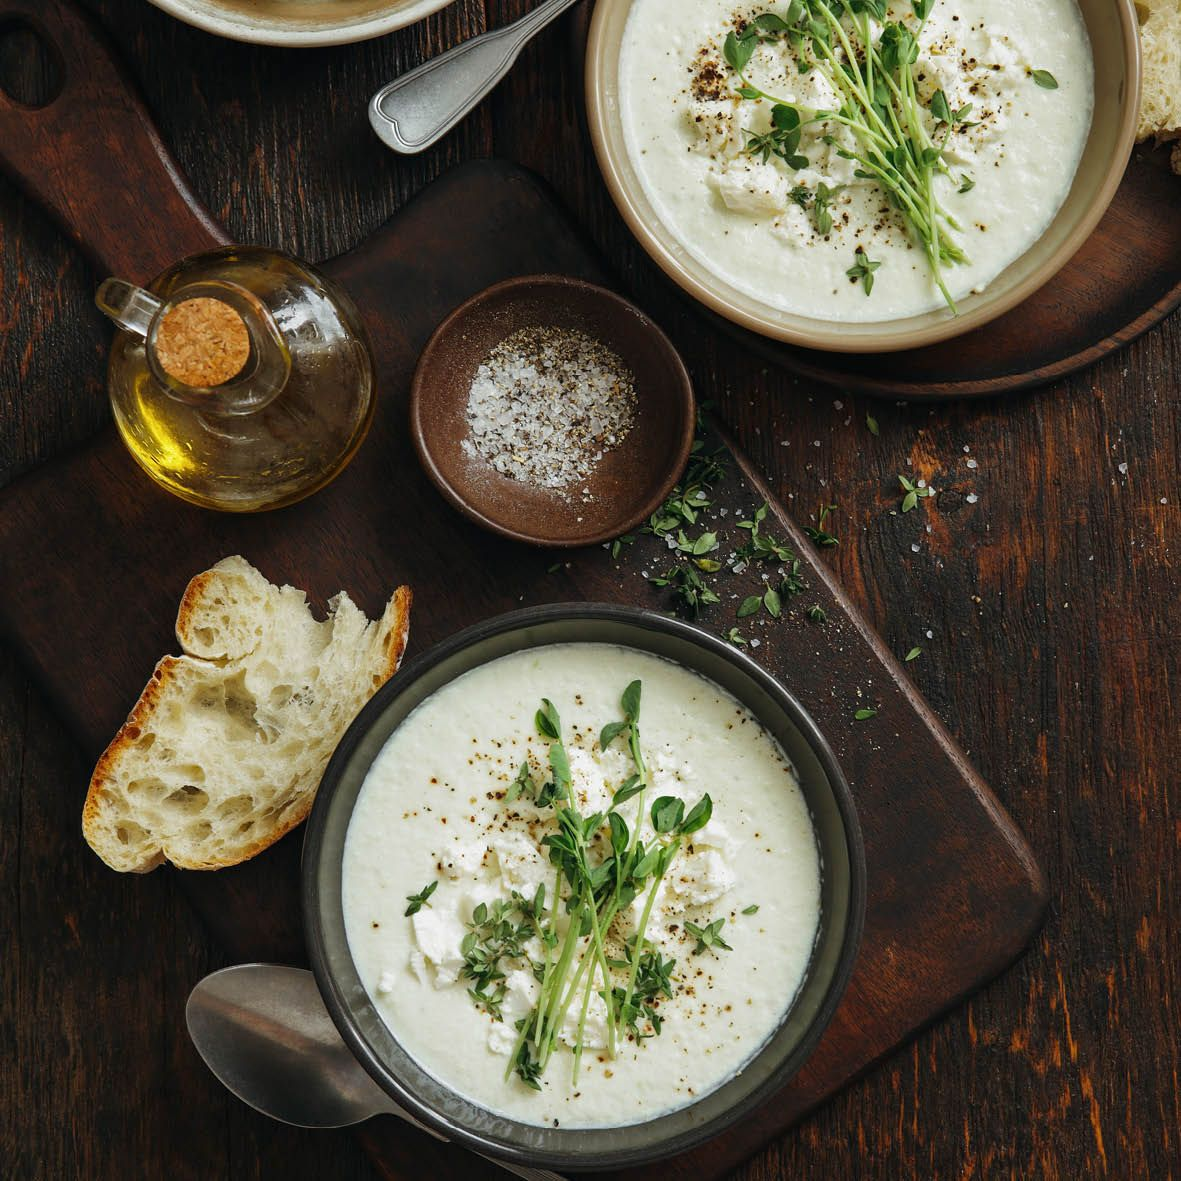 Creamy_Cauliflower_and_Broccoli_Soup_with_Feta.jpg